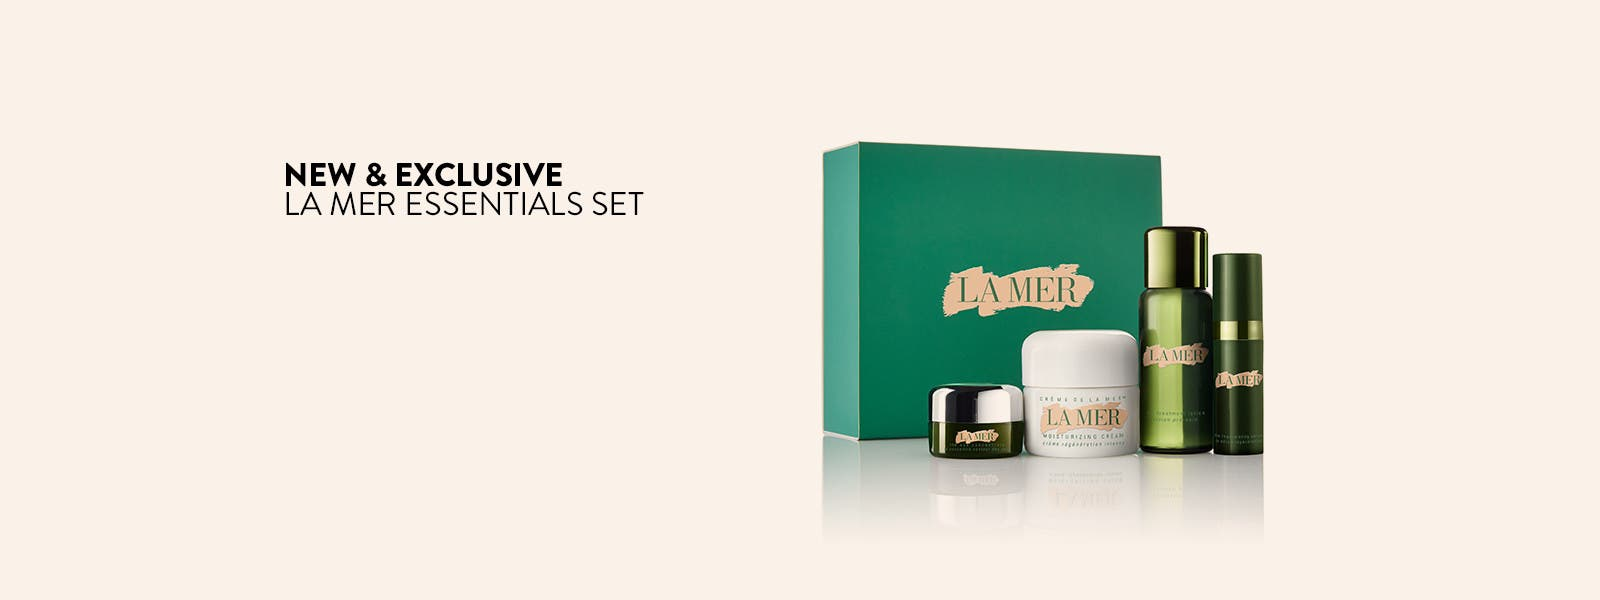 New and exclusive La Mer Introductory Collection.